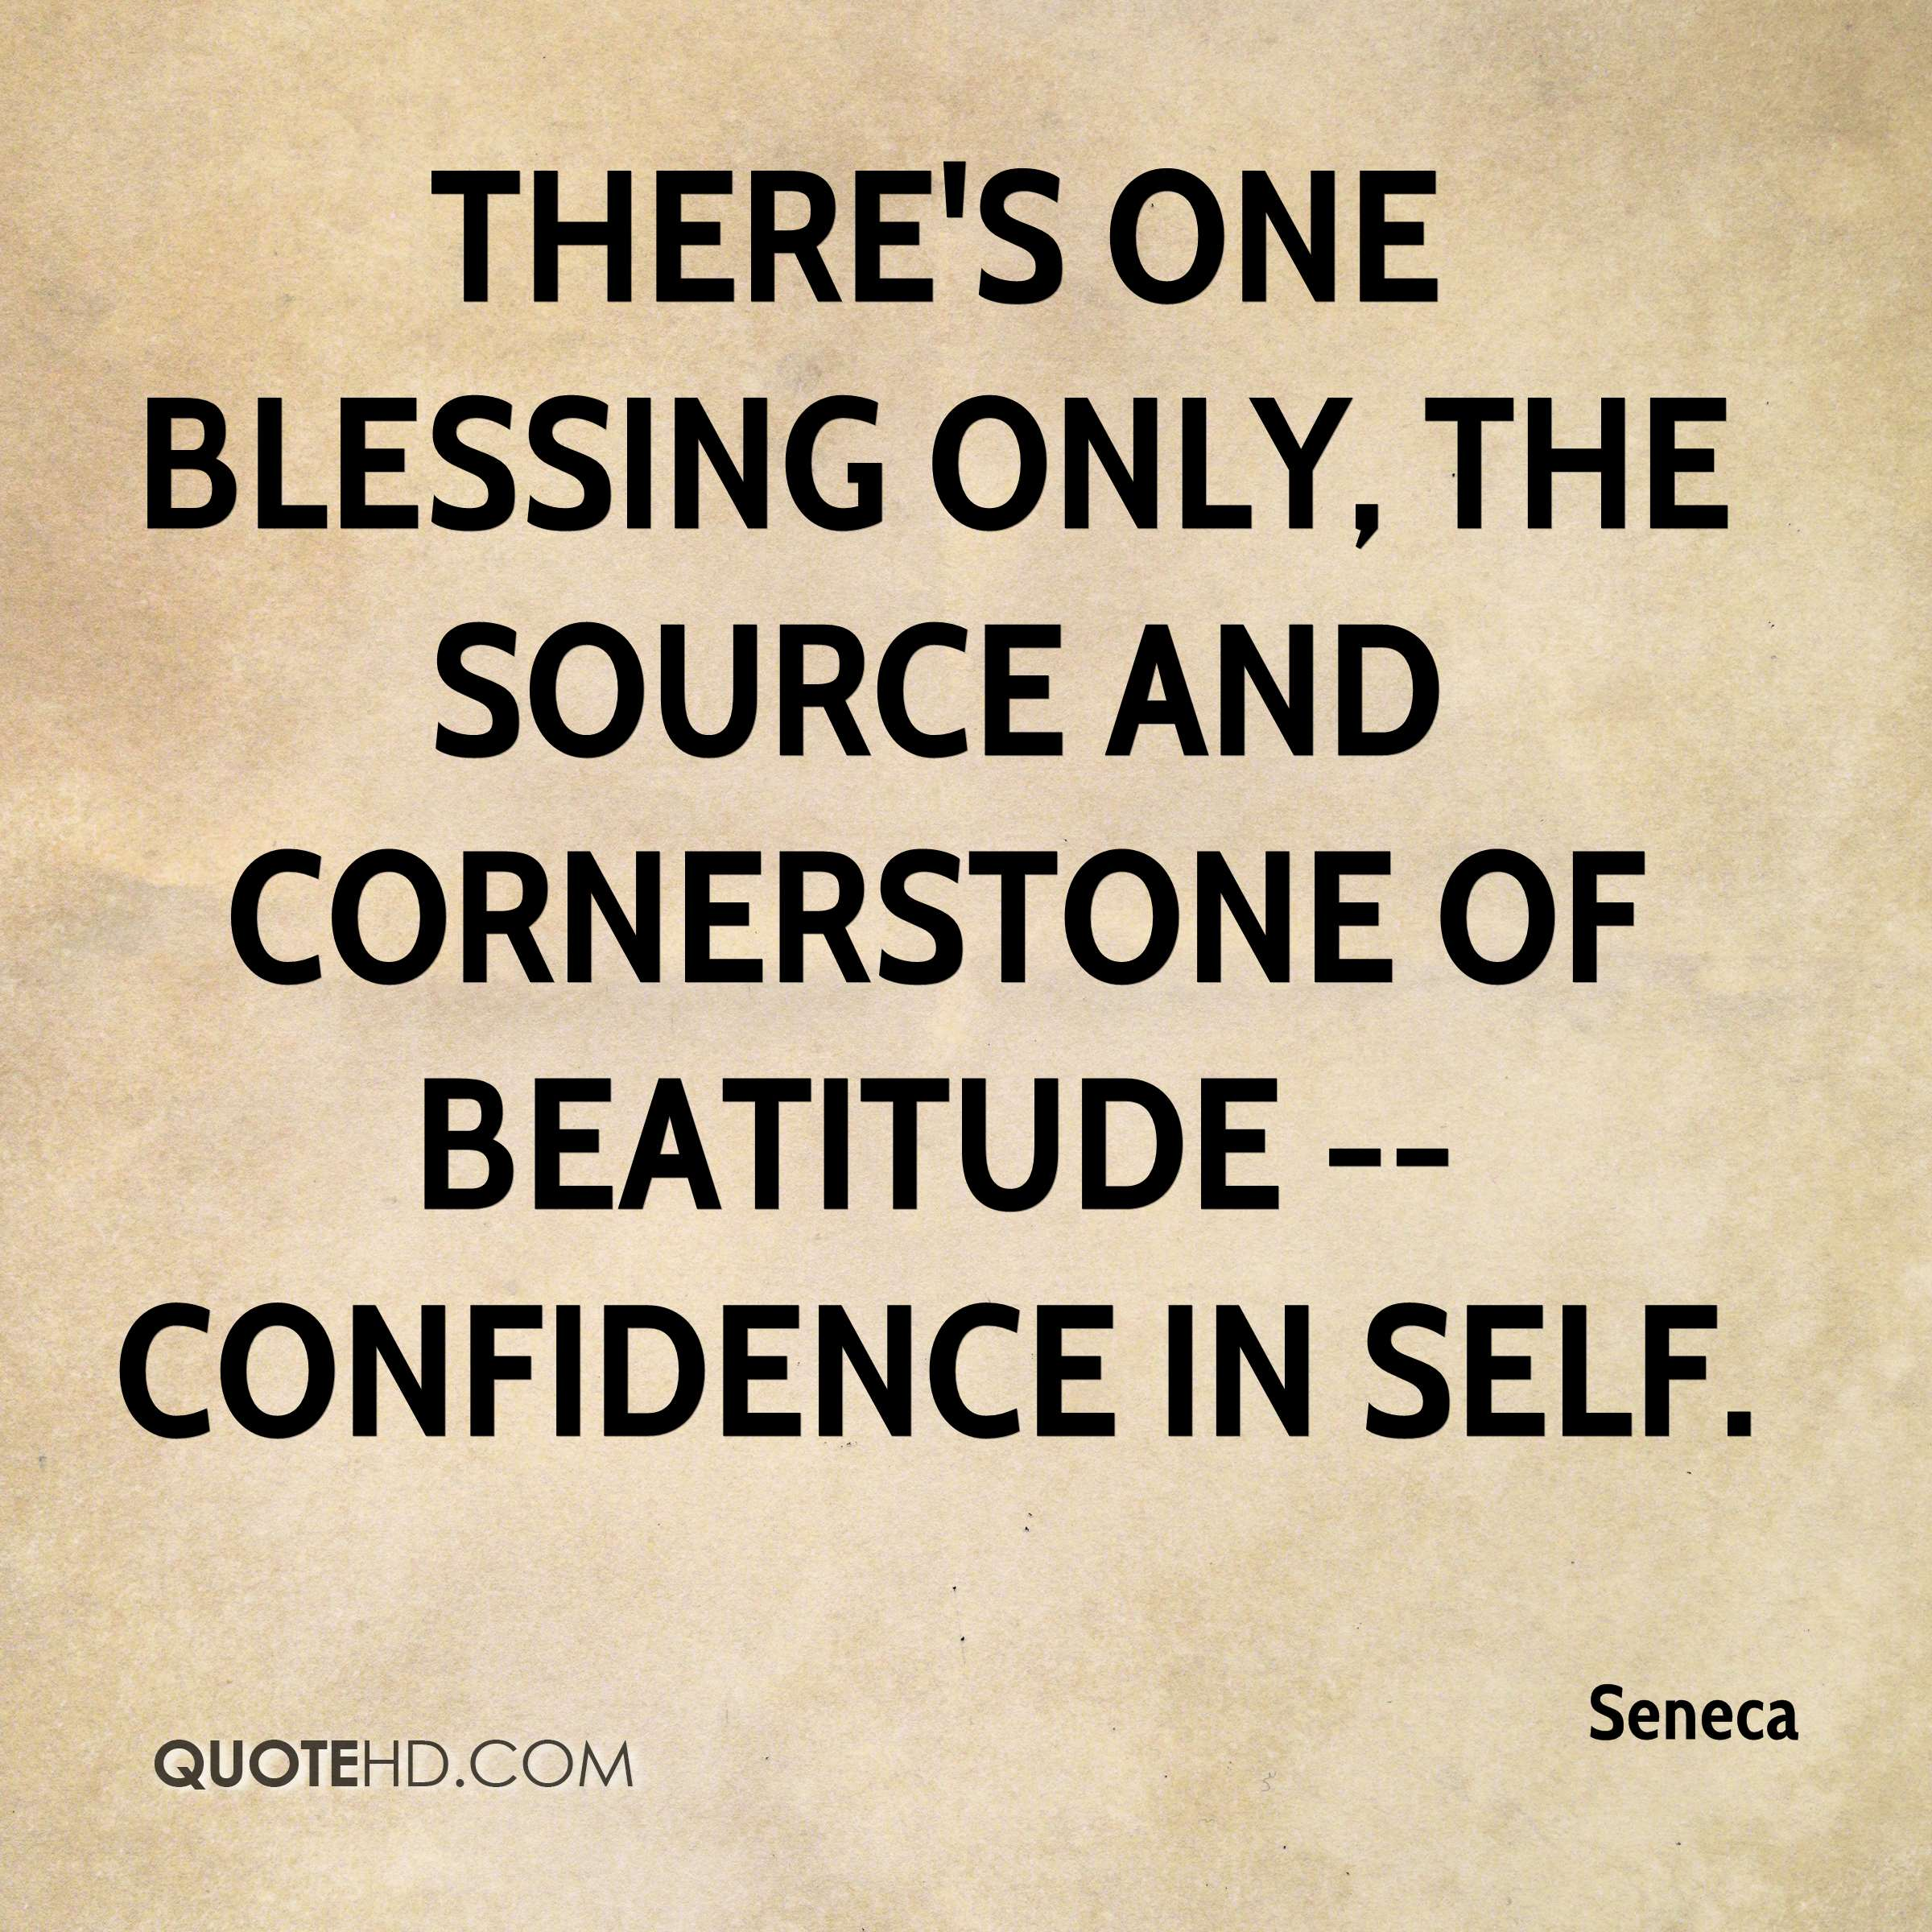 There's one blessing only, the source and cornerstone of beatitude -- confidence in self.